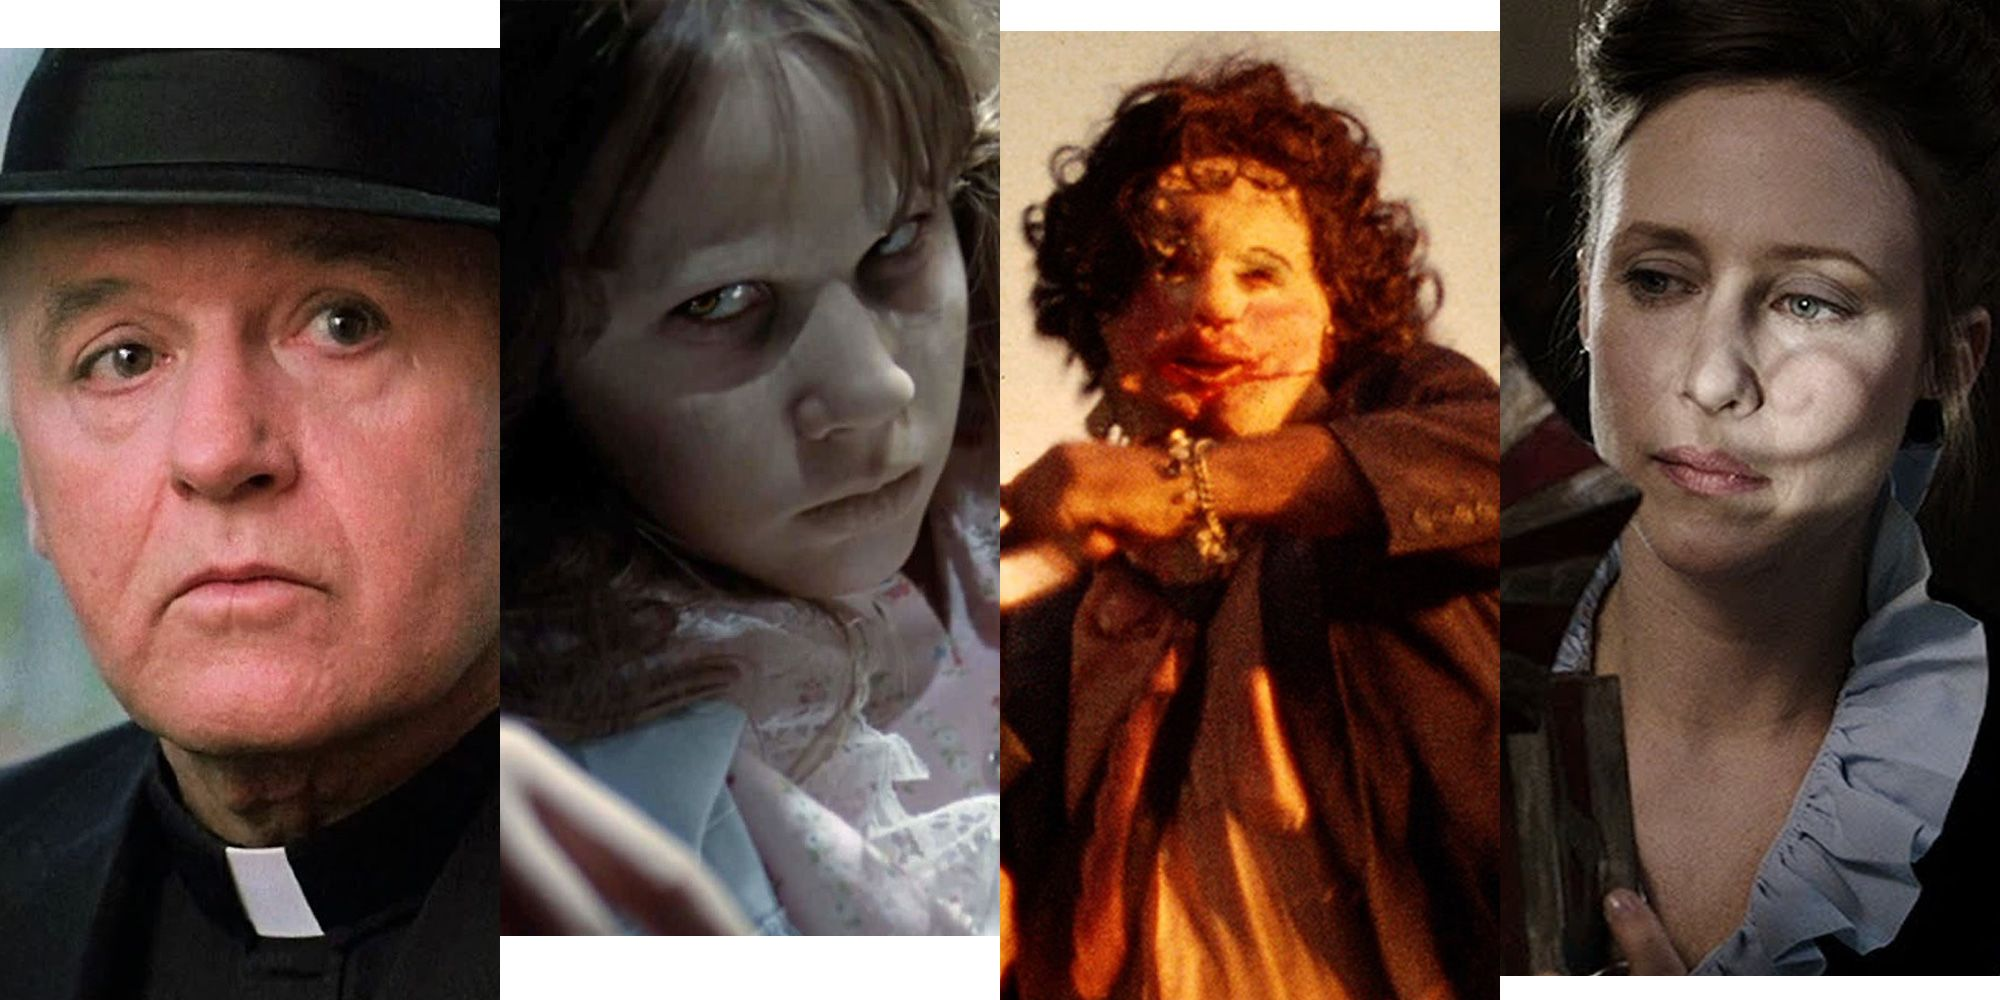 10 Horror Movies Inspired by True Events